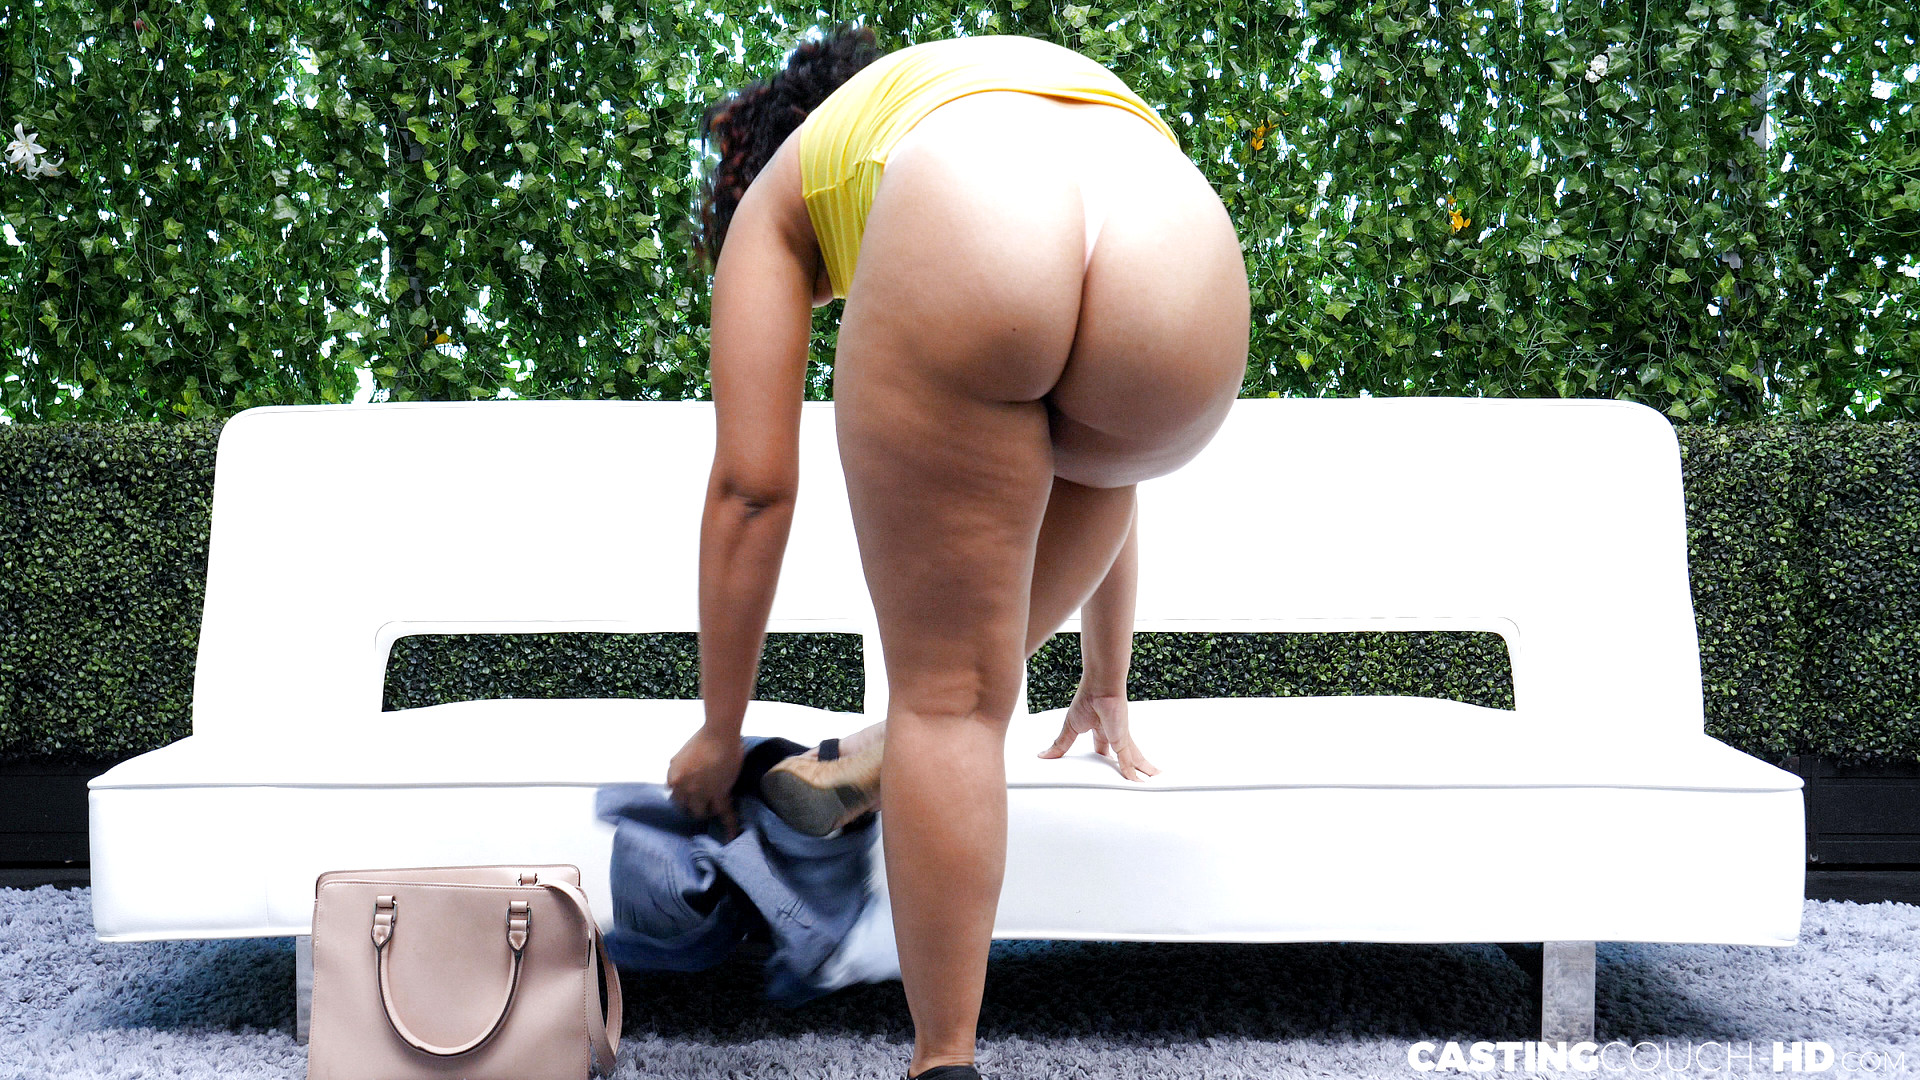 Castingcouch-hd melissa